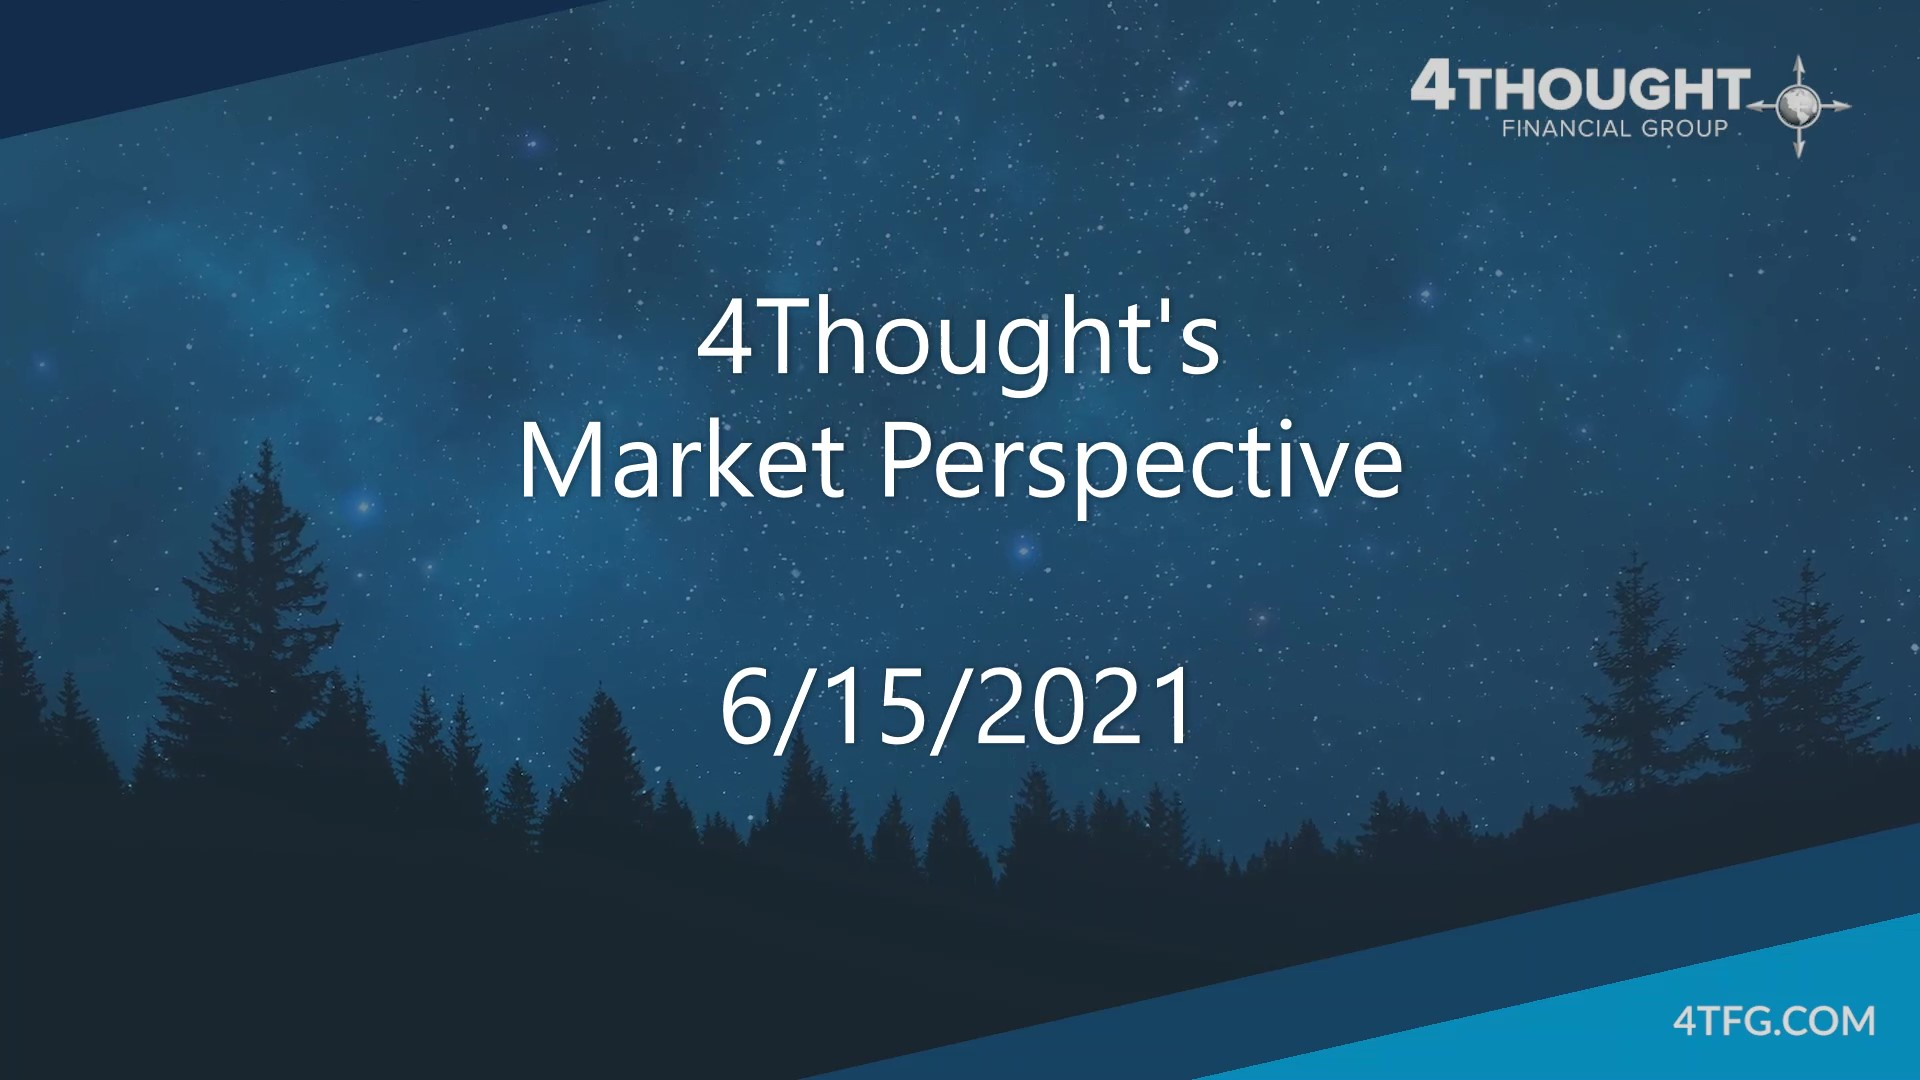 4Thought's Market Perspective 6-15-21